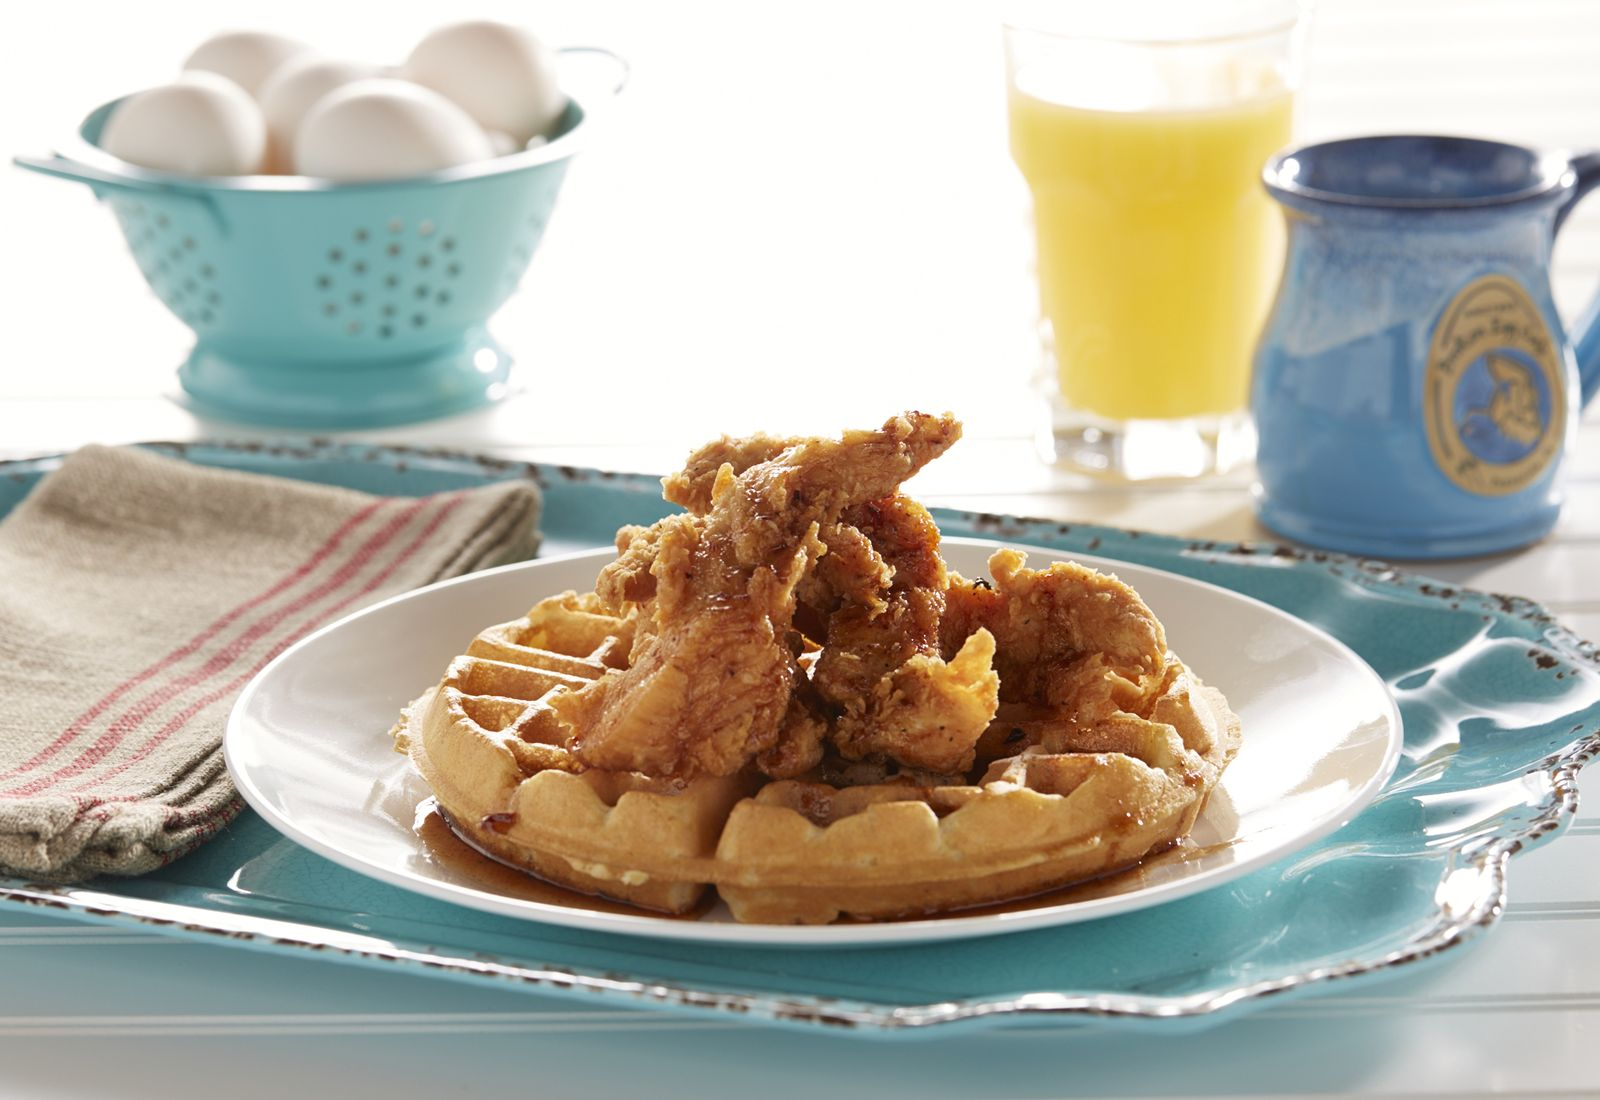 Another Broken Egg Cafe Opening Soon in Hilton Head Island, South Carolina